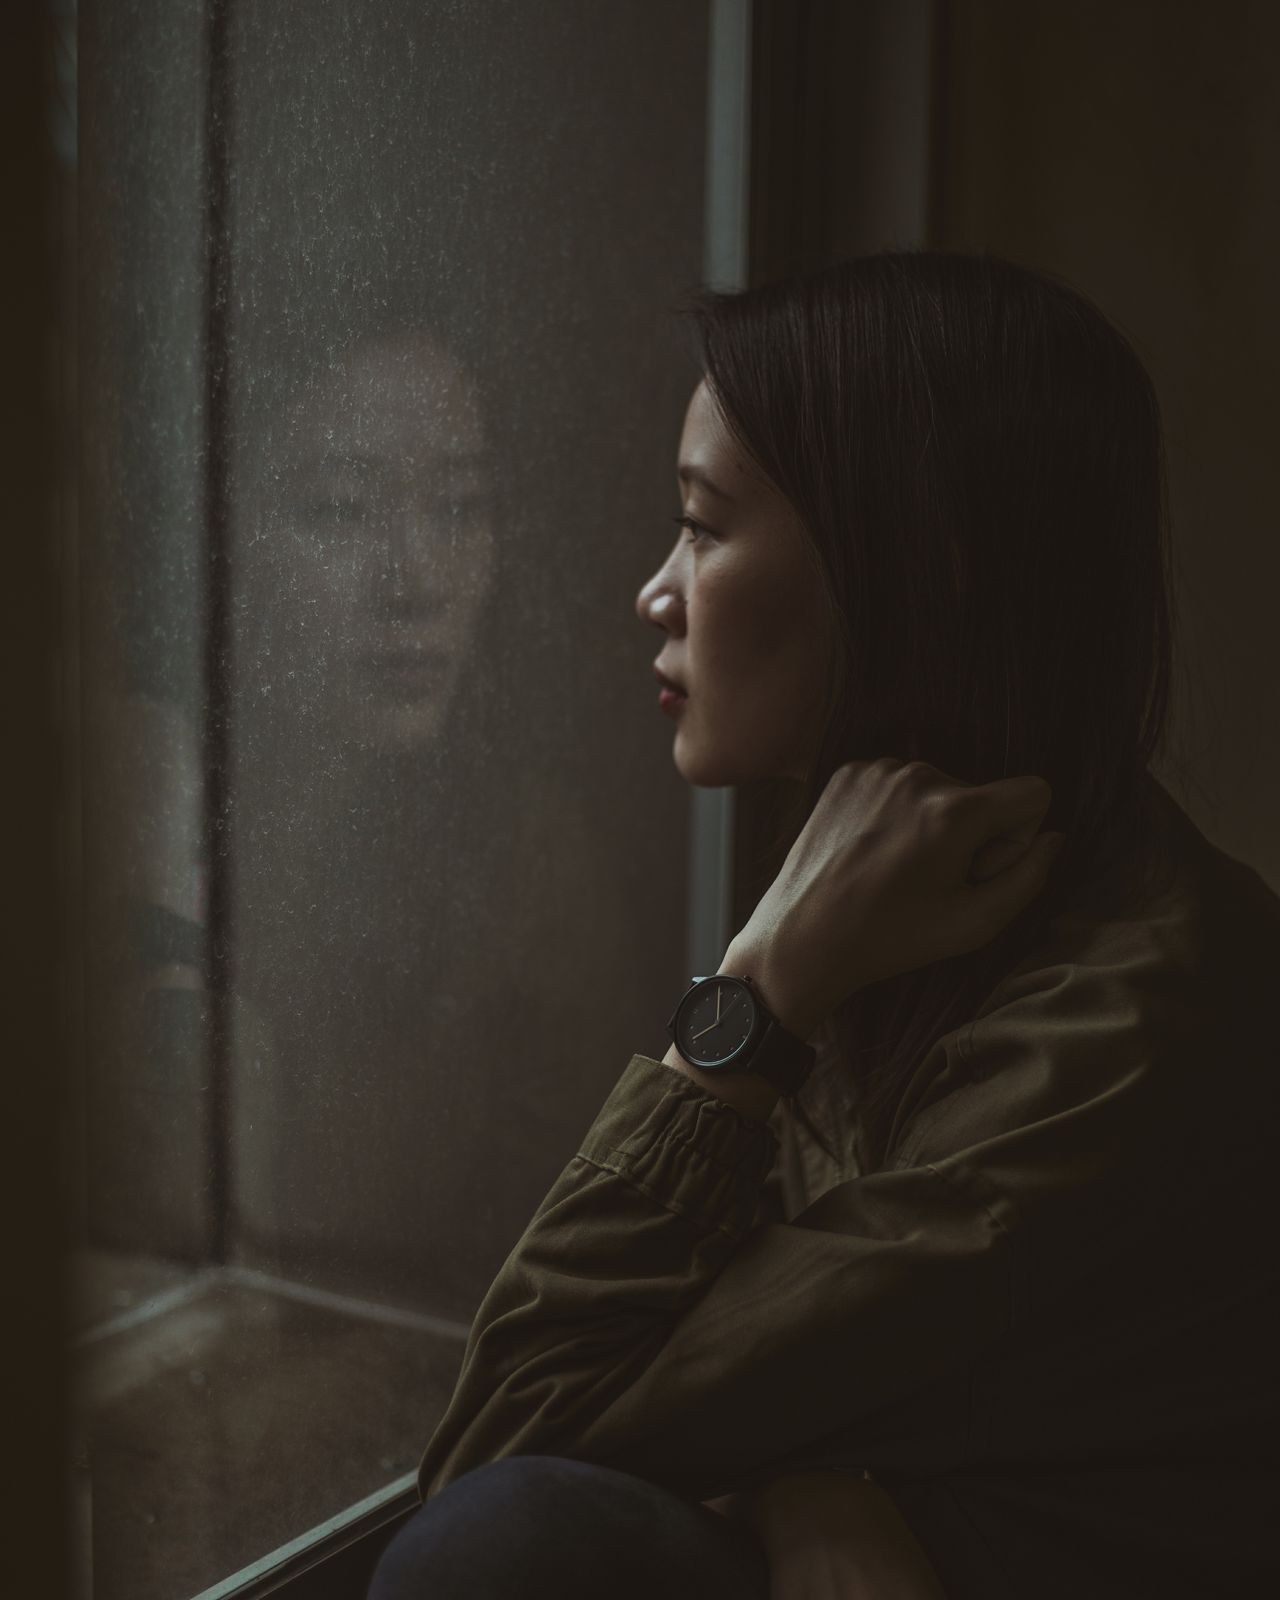 time and tide Contemplation Indoors  Portraits Of EyeEm Portrait Photography Portrait Of A Girl Portrait Of A Woman Women Of EyeEm Beautiful People Fine Art Photography Moody Portrait Reflection Reflection_collection Window Dark The City Light